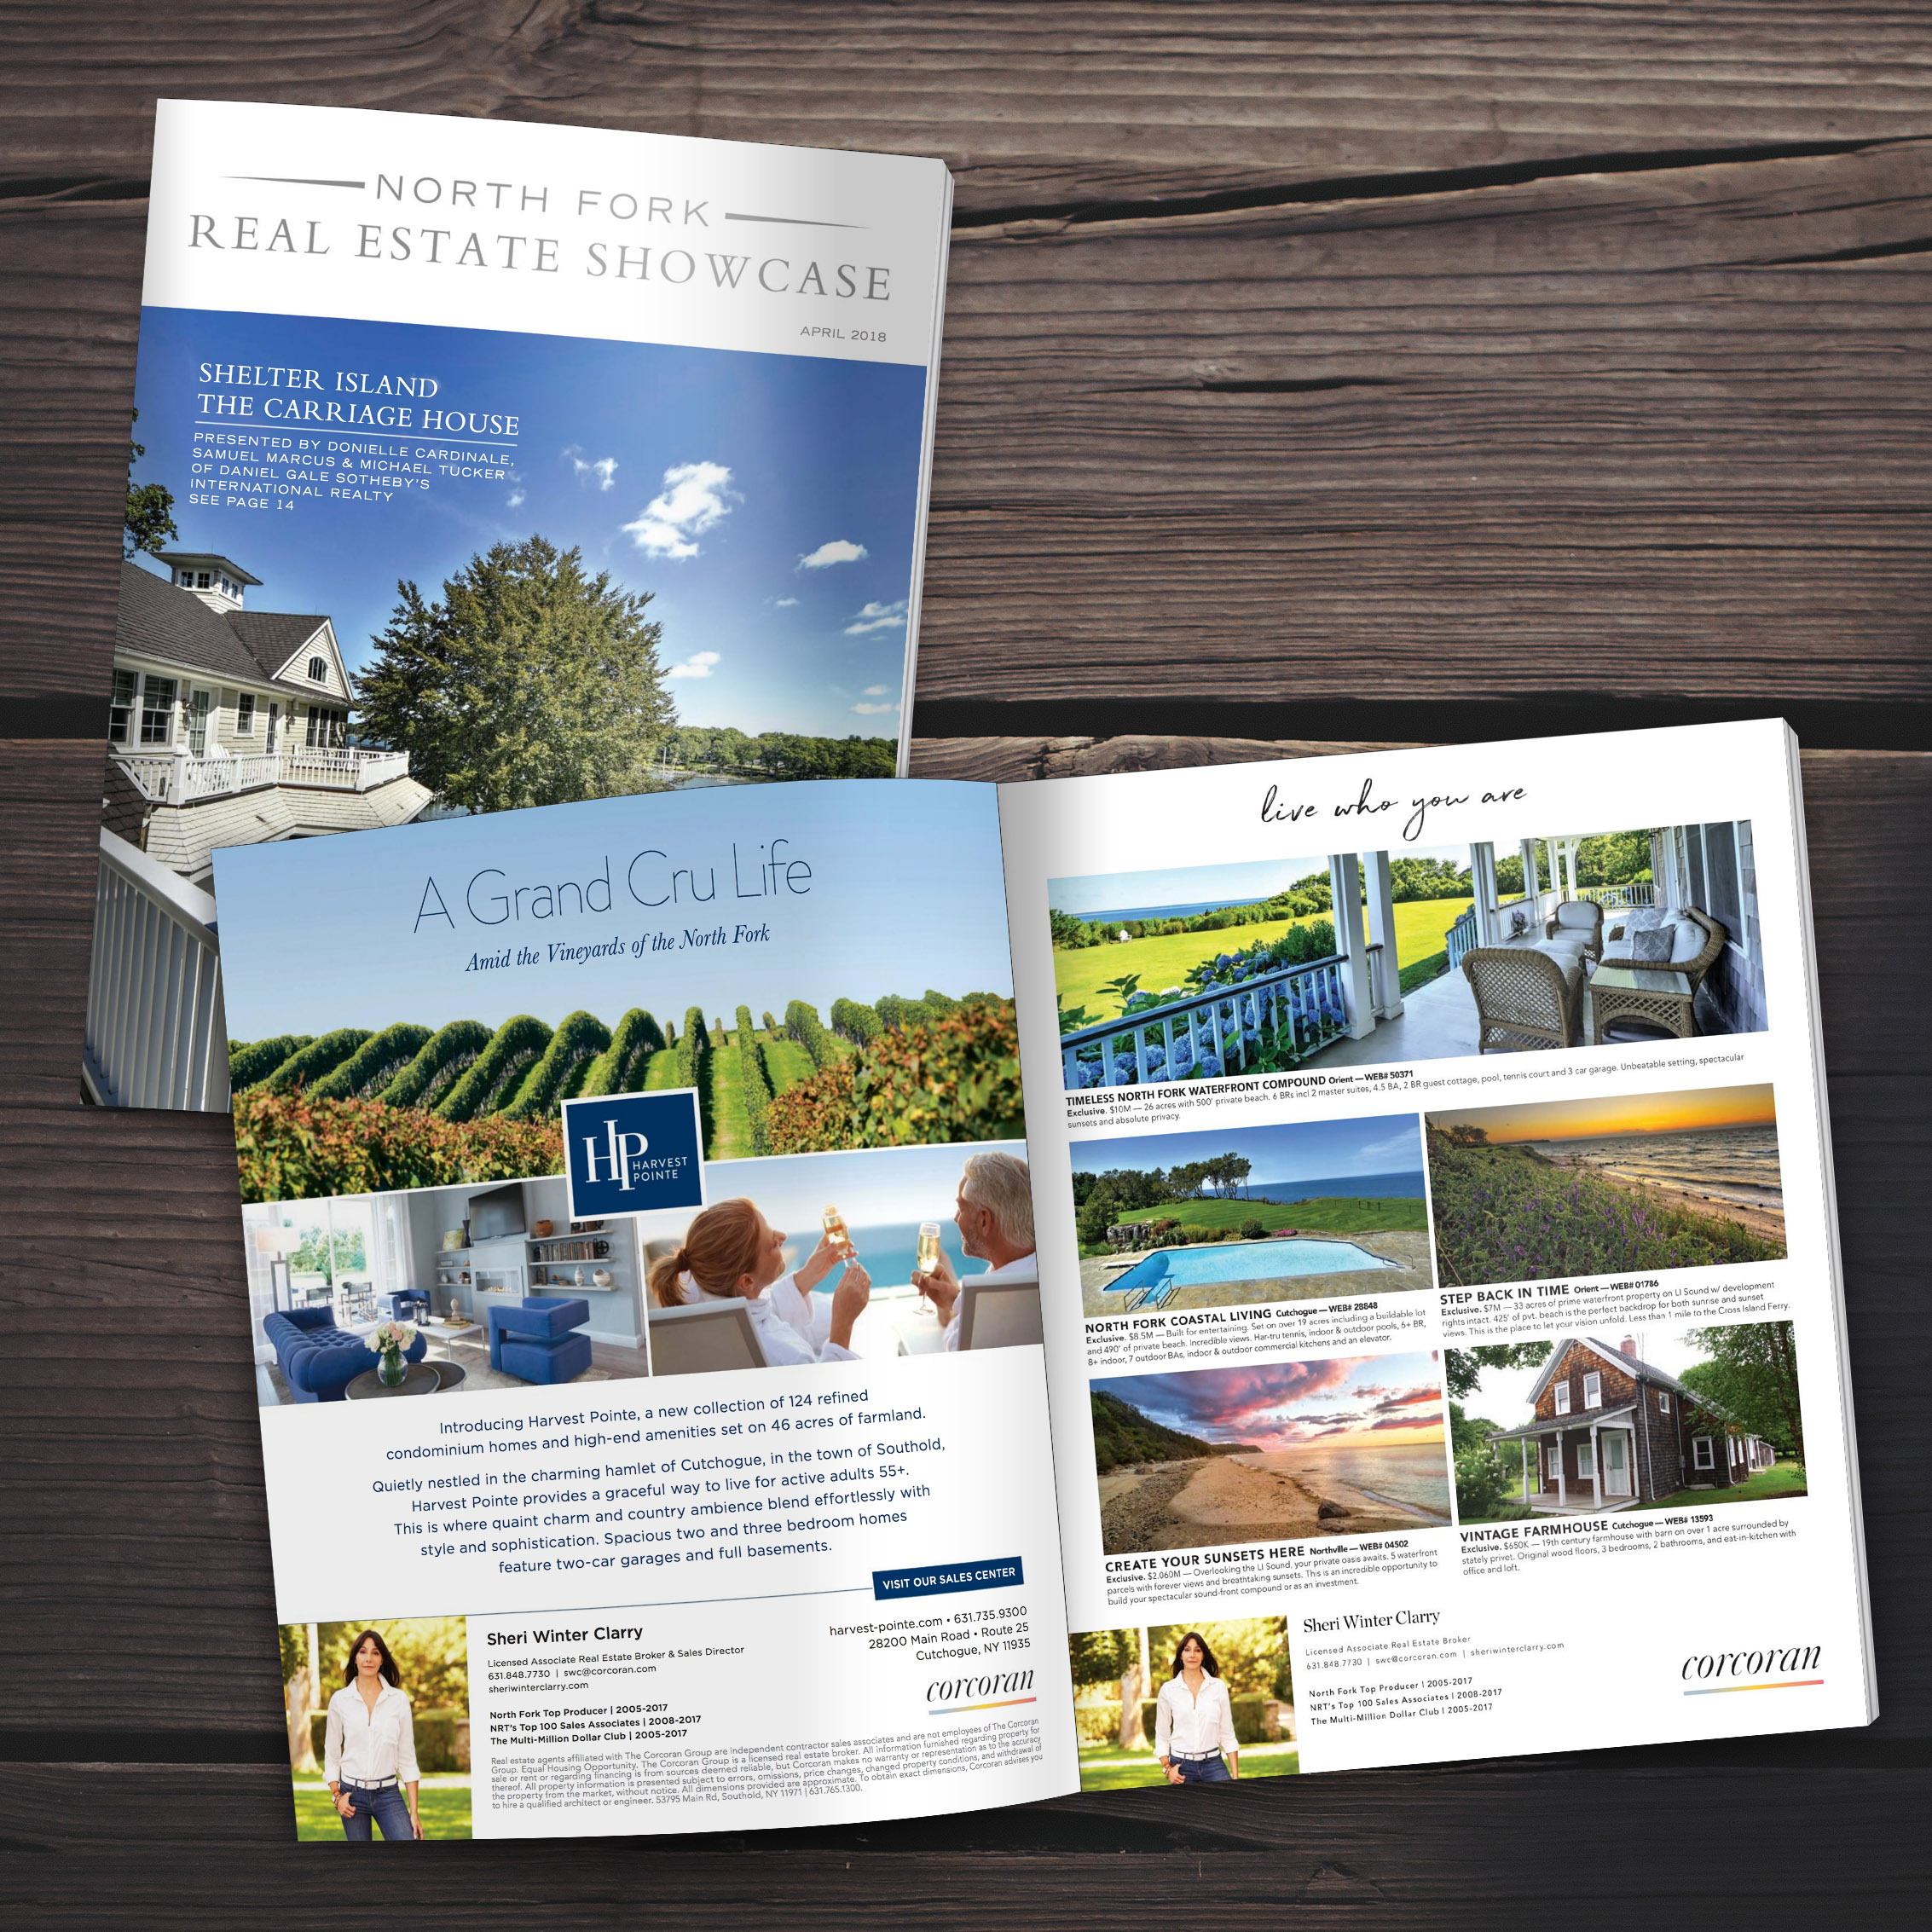 Featured in April's Issue of the North Fork Real Estate Showcase